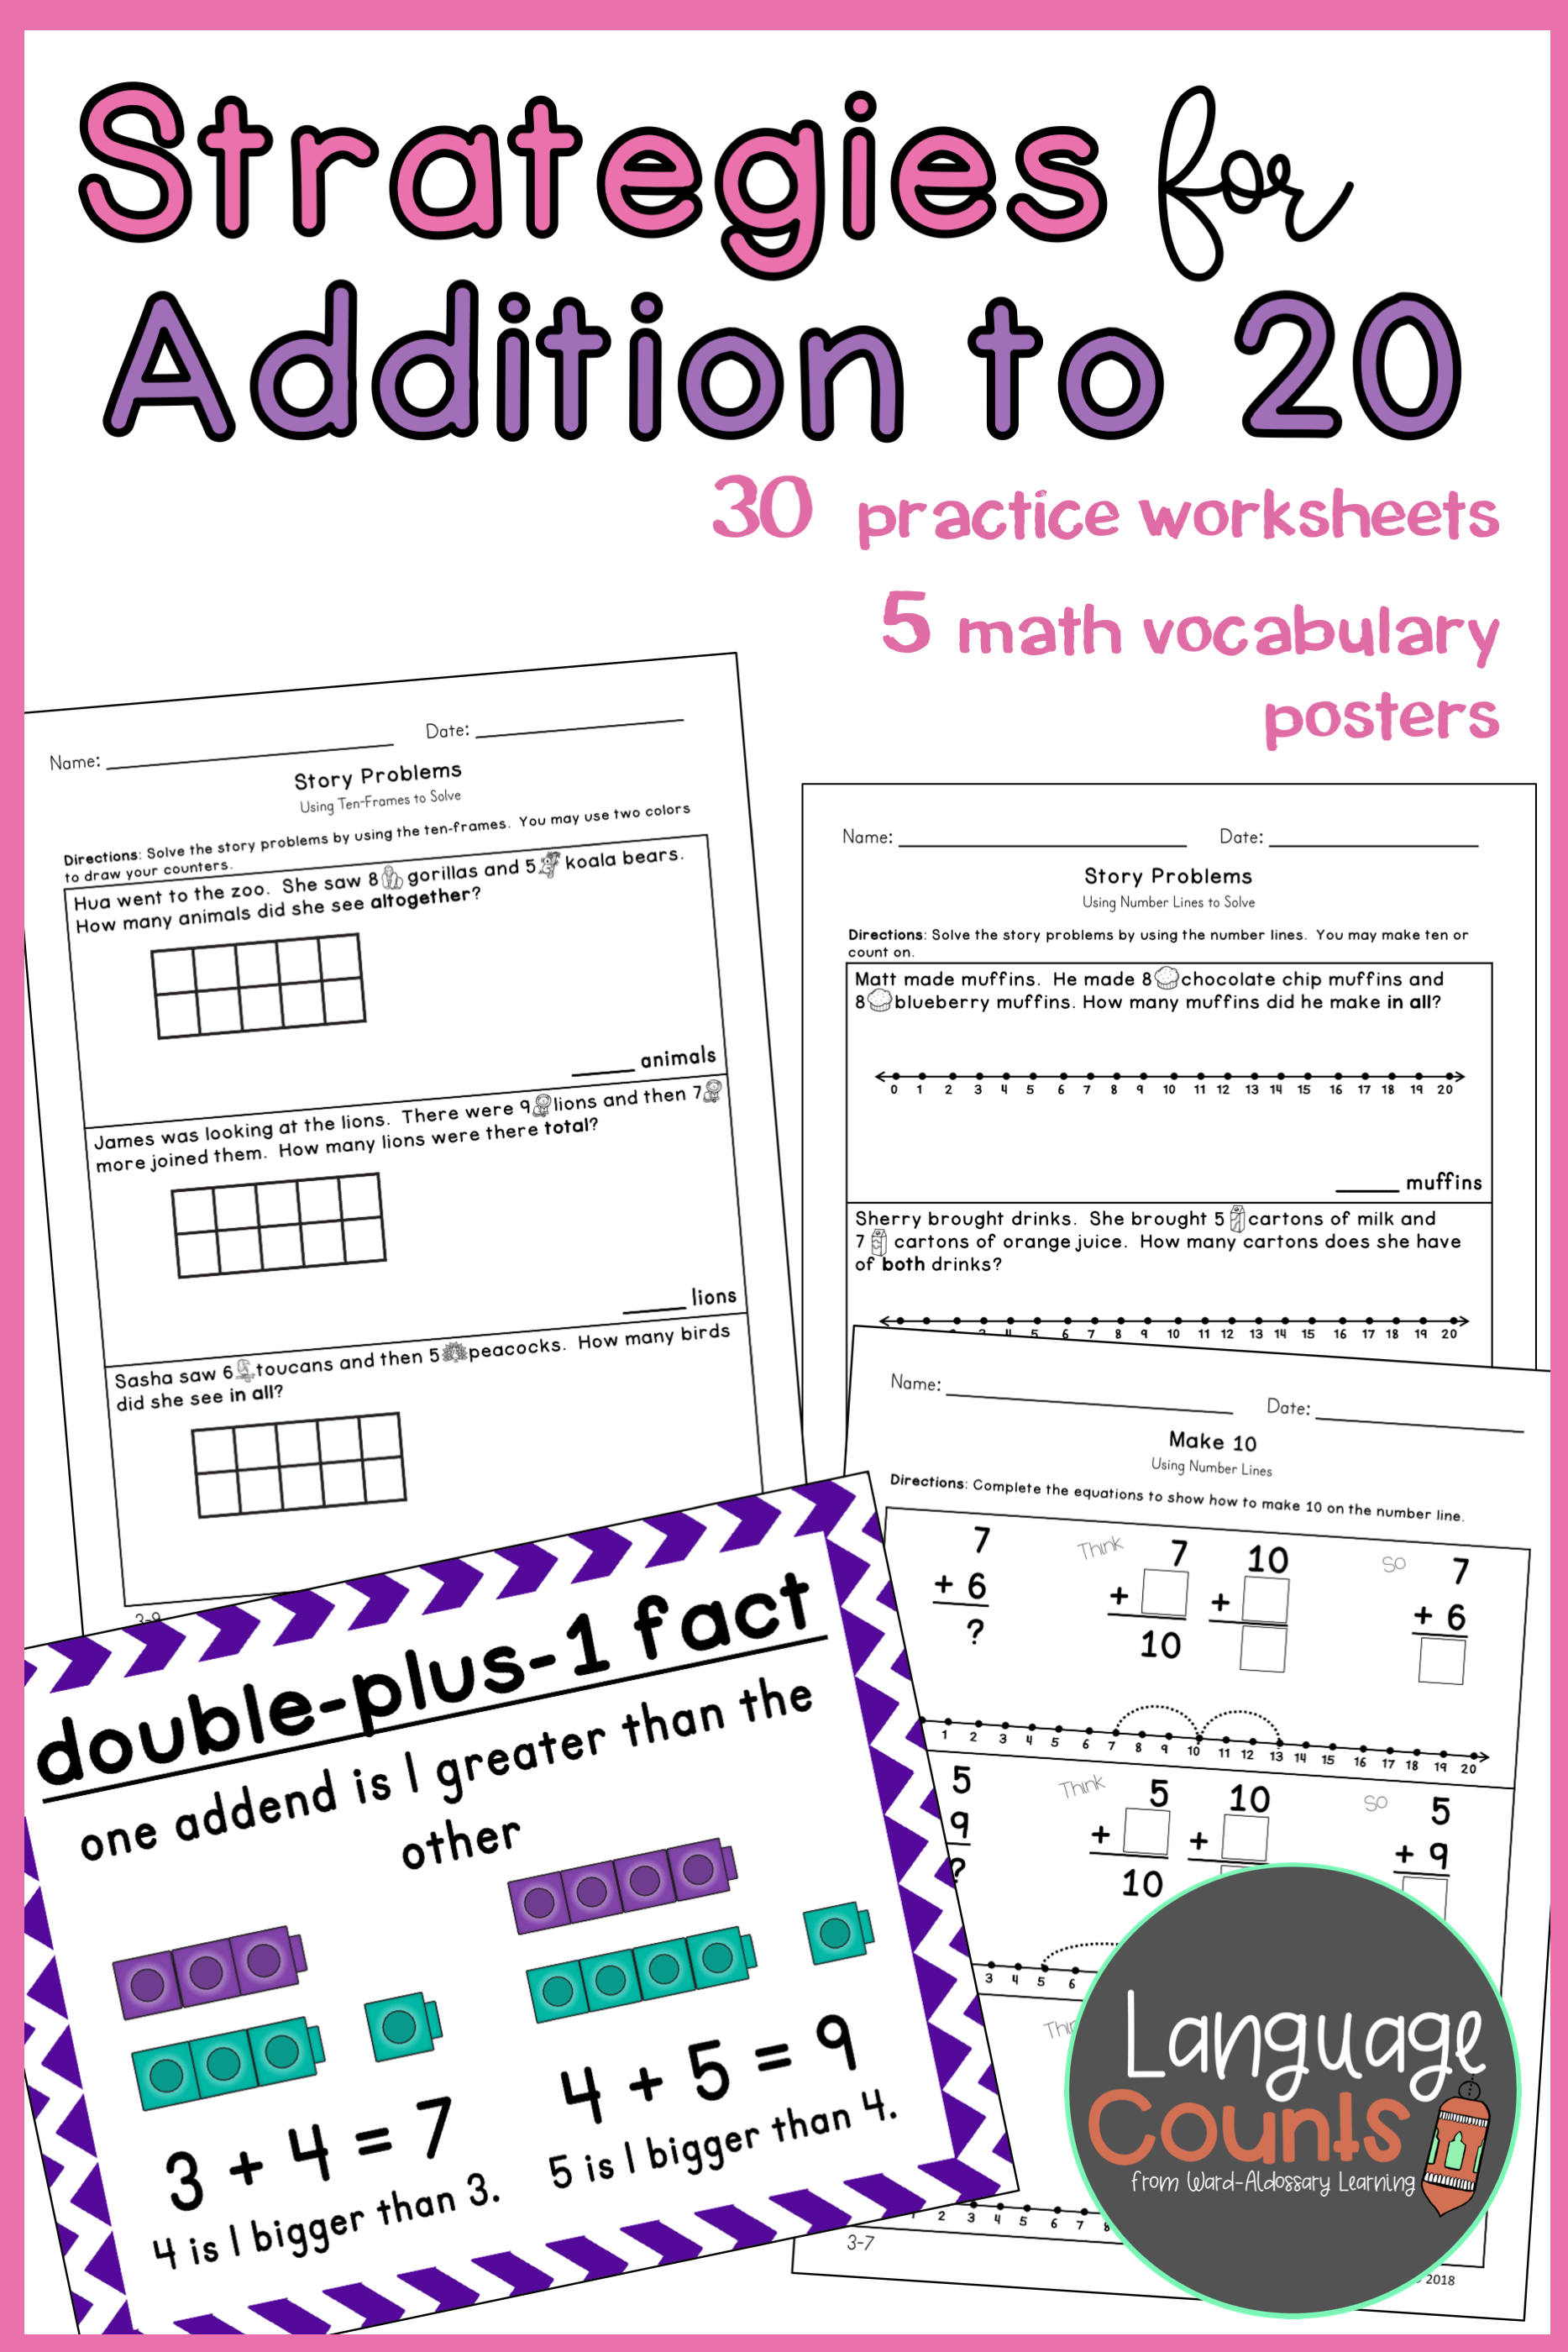 Strategies For Addition To 20 1st Grade With Images